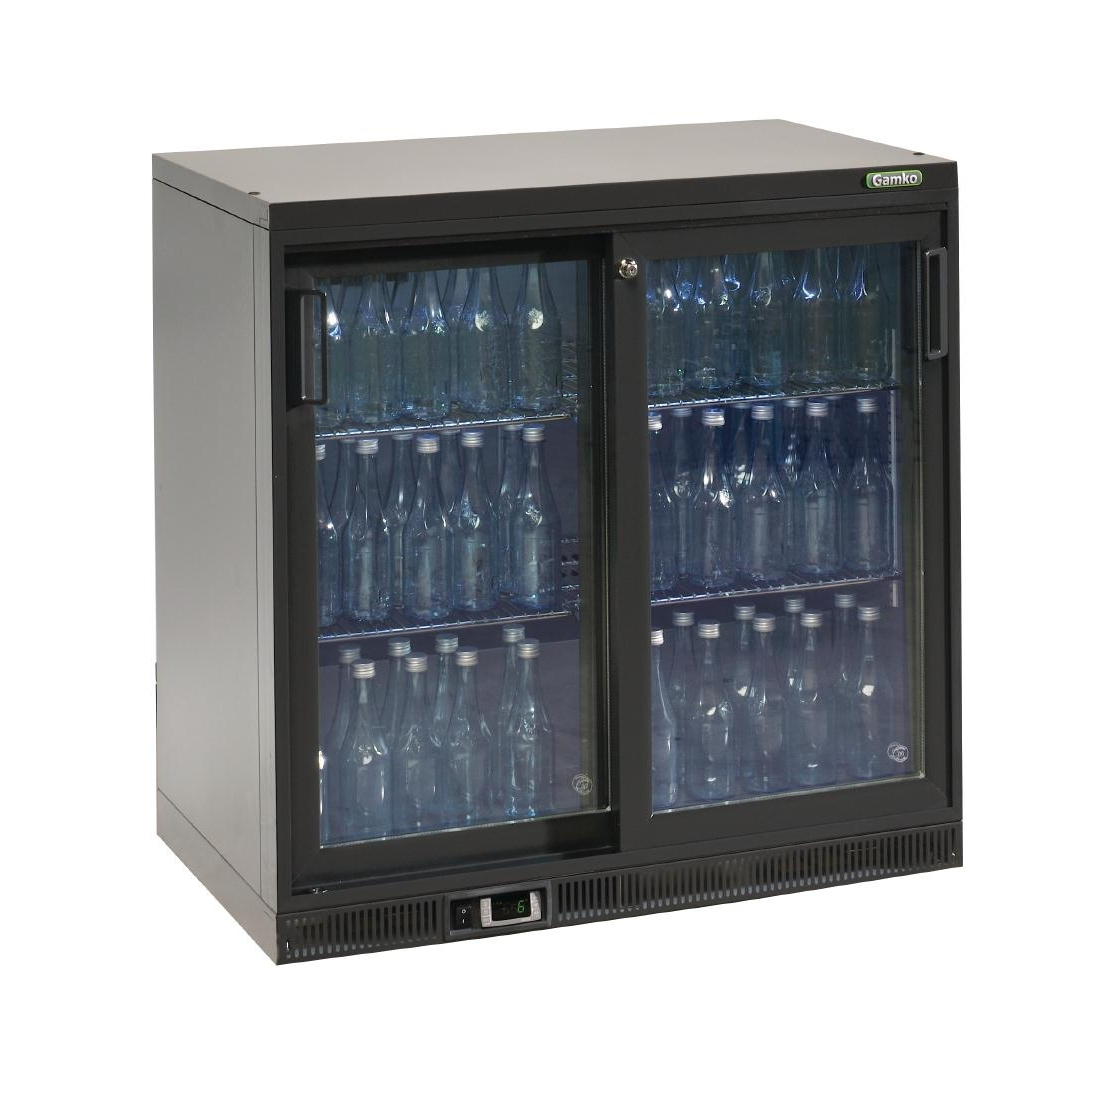 Gamko Bottle Cooler - Double Sliding Door 250 Ltr